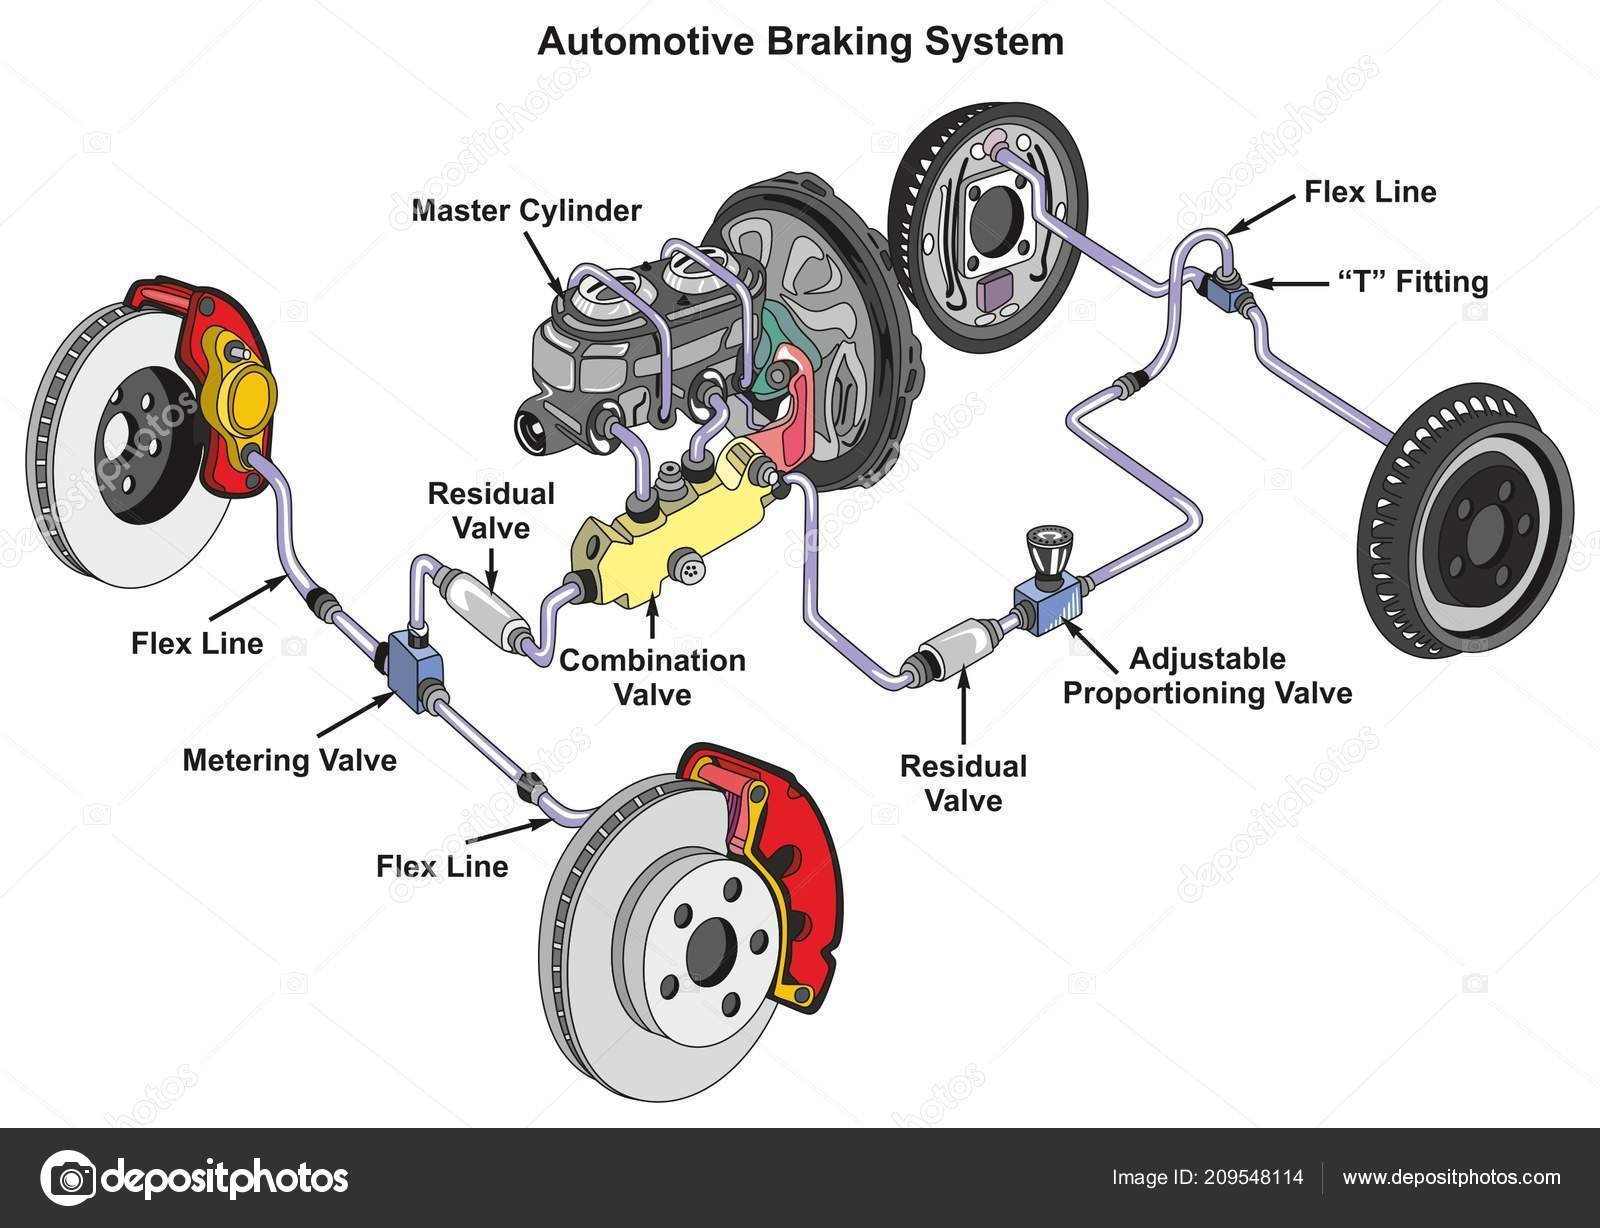 Automotive Braking System Infographic Diagram Showing Front Disk